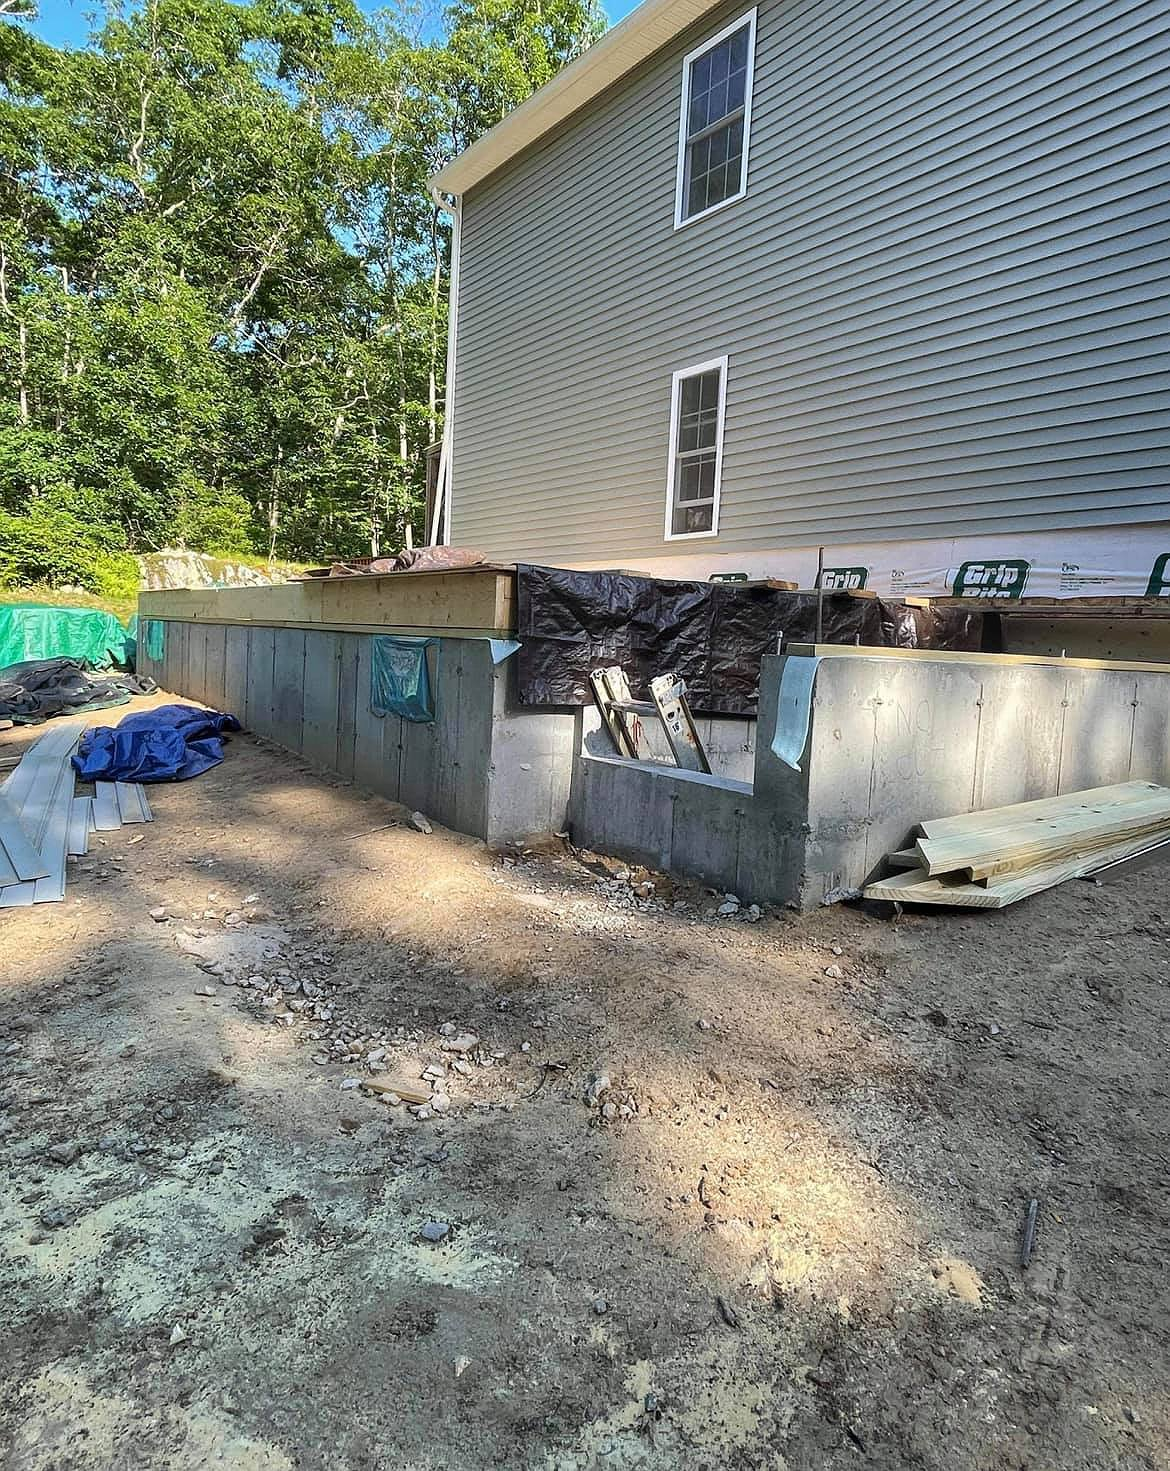 Home and yard before and after contractor demolished them both